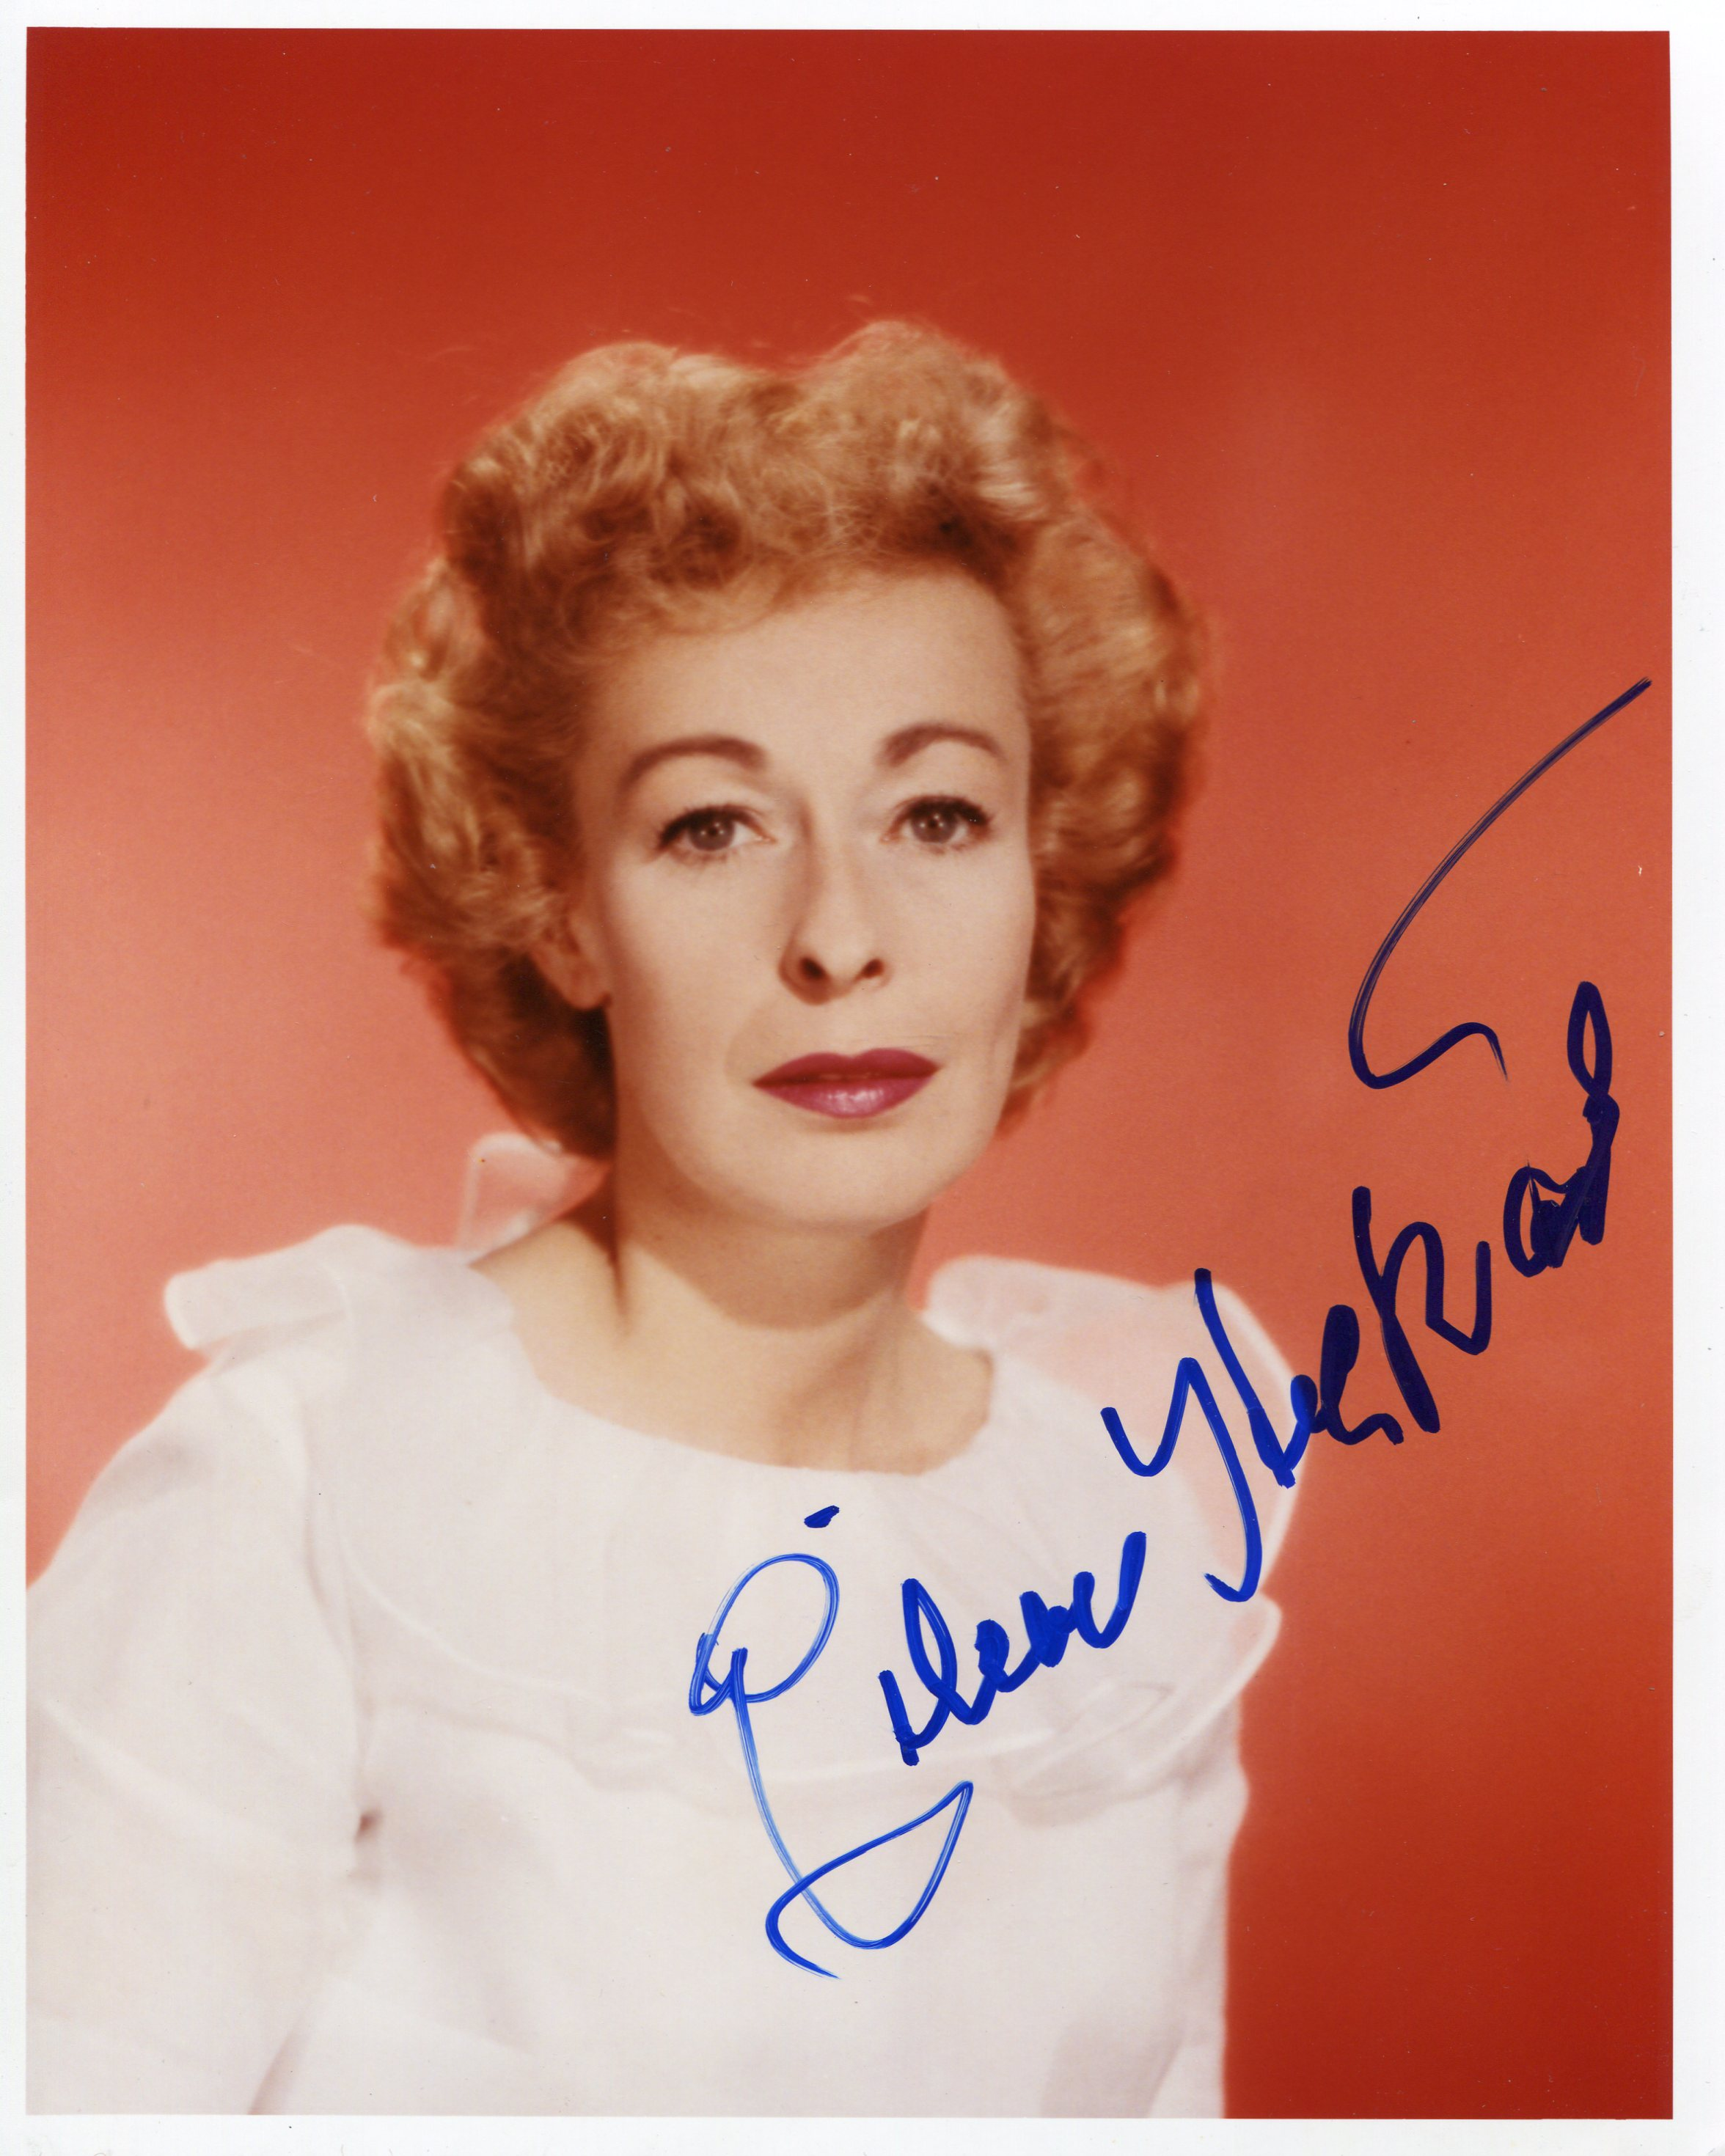 eileen heckart gunsmokeeileen heckart actress, eileen heckart movies, eileen heckart gunsmoke, eileen heckart net worth, eileen heckart bad seed, eileen heckart tv shows, eileen heckart imdb, eileen heckart on marilyn monroe, eileen heckart youtube, eileen heckart grave, eileen heckart butterflies are free, eileen heckart little house on the prairie, eileen heckart oscar, eileen heckart cosby show, eileen heckart winning oscar, eileen heckart images, eileen heckart awards, eileen heckart picnic, eileen heckart photos, eileen heckart interview